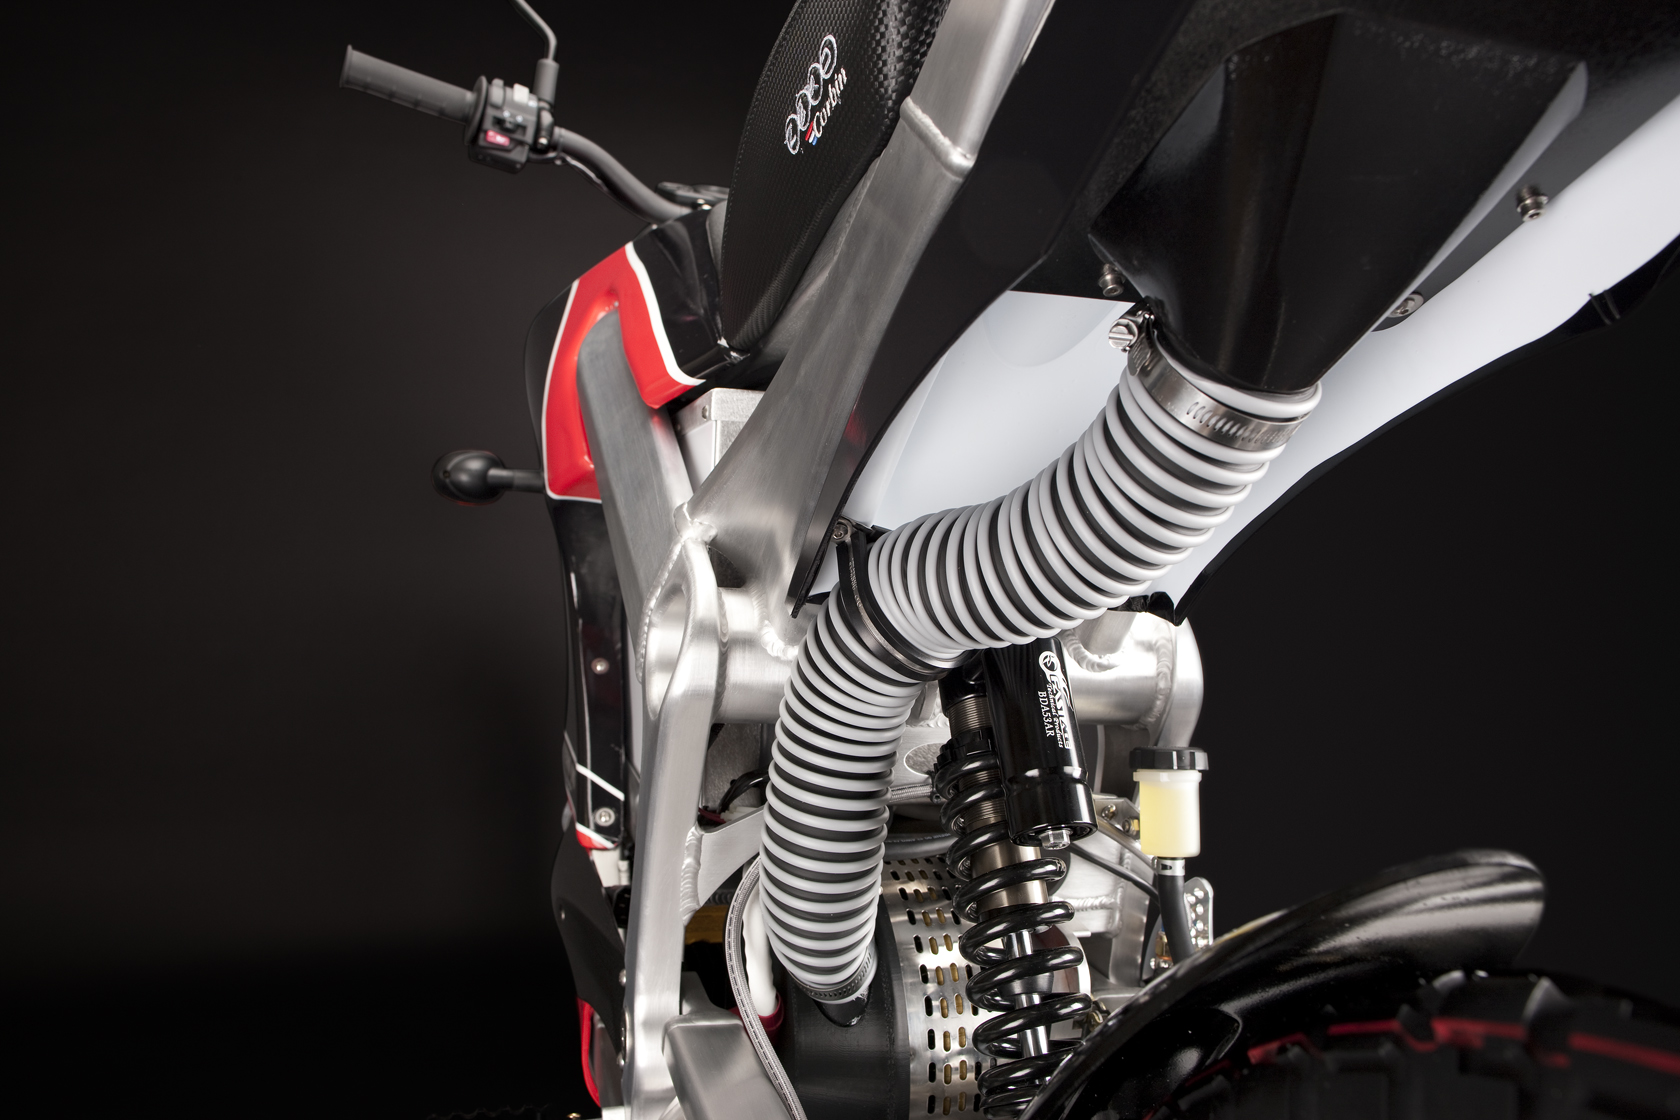 2010 Zero DS Electric Motorcycle: Air Induction